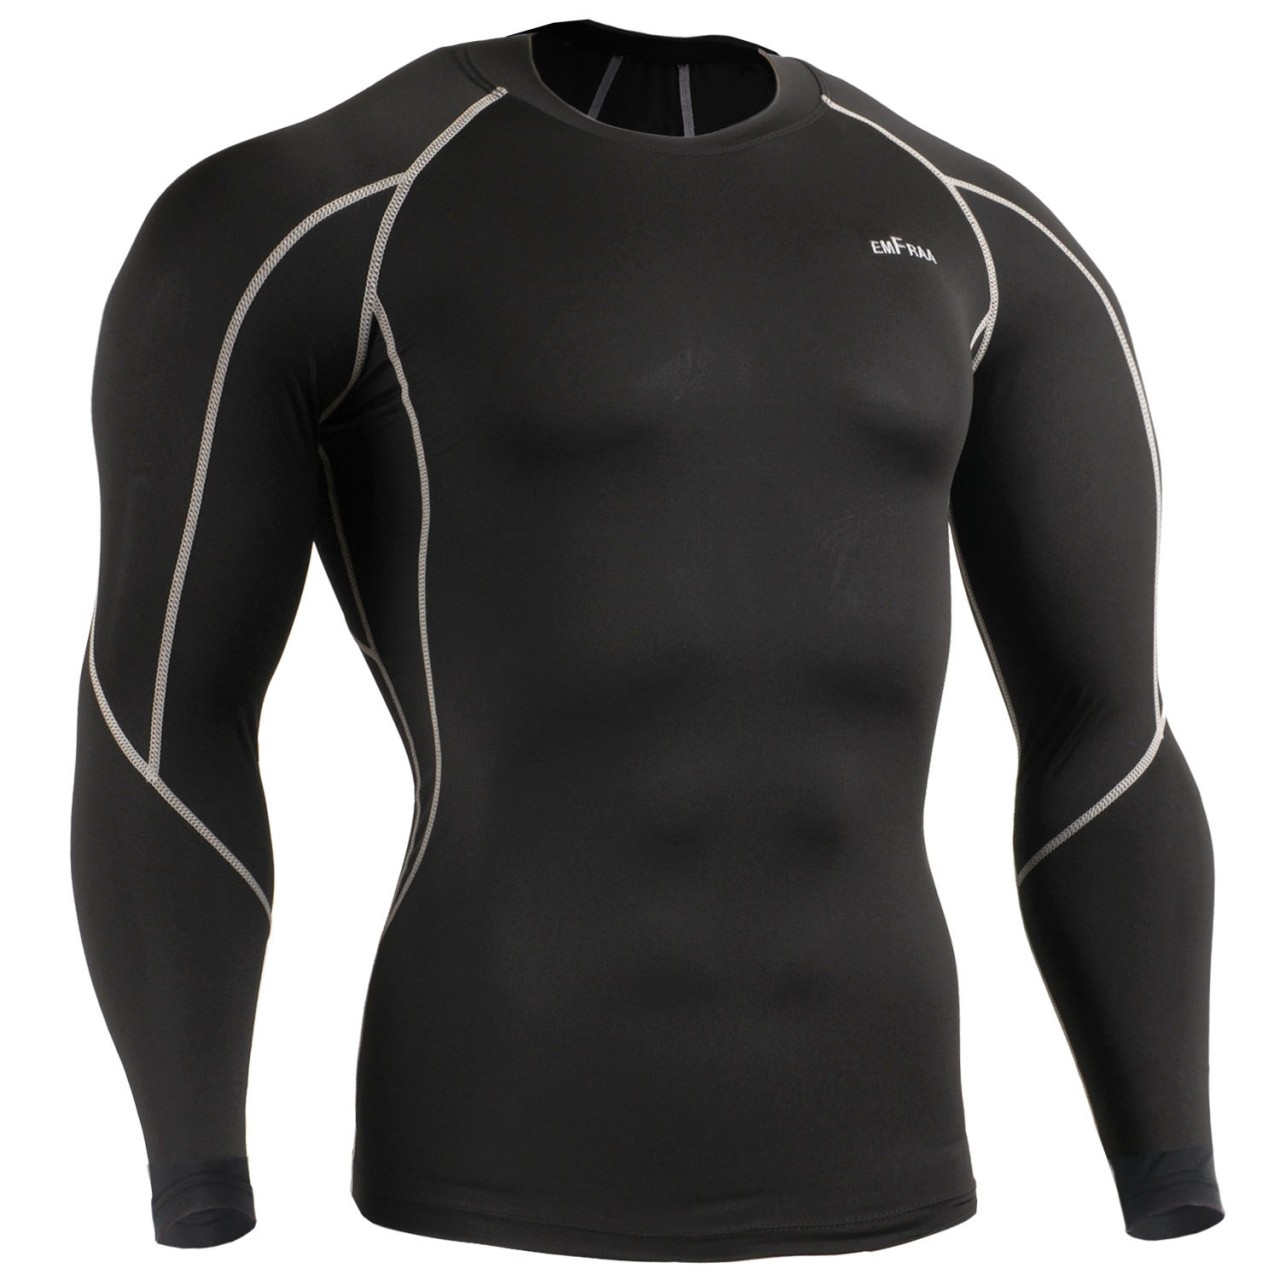 emfraa compression skin under base layer shirt long sleeve for mens ... 0644e22a201